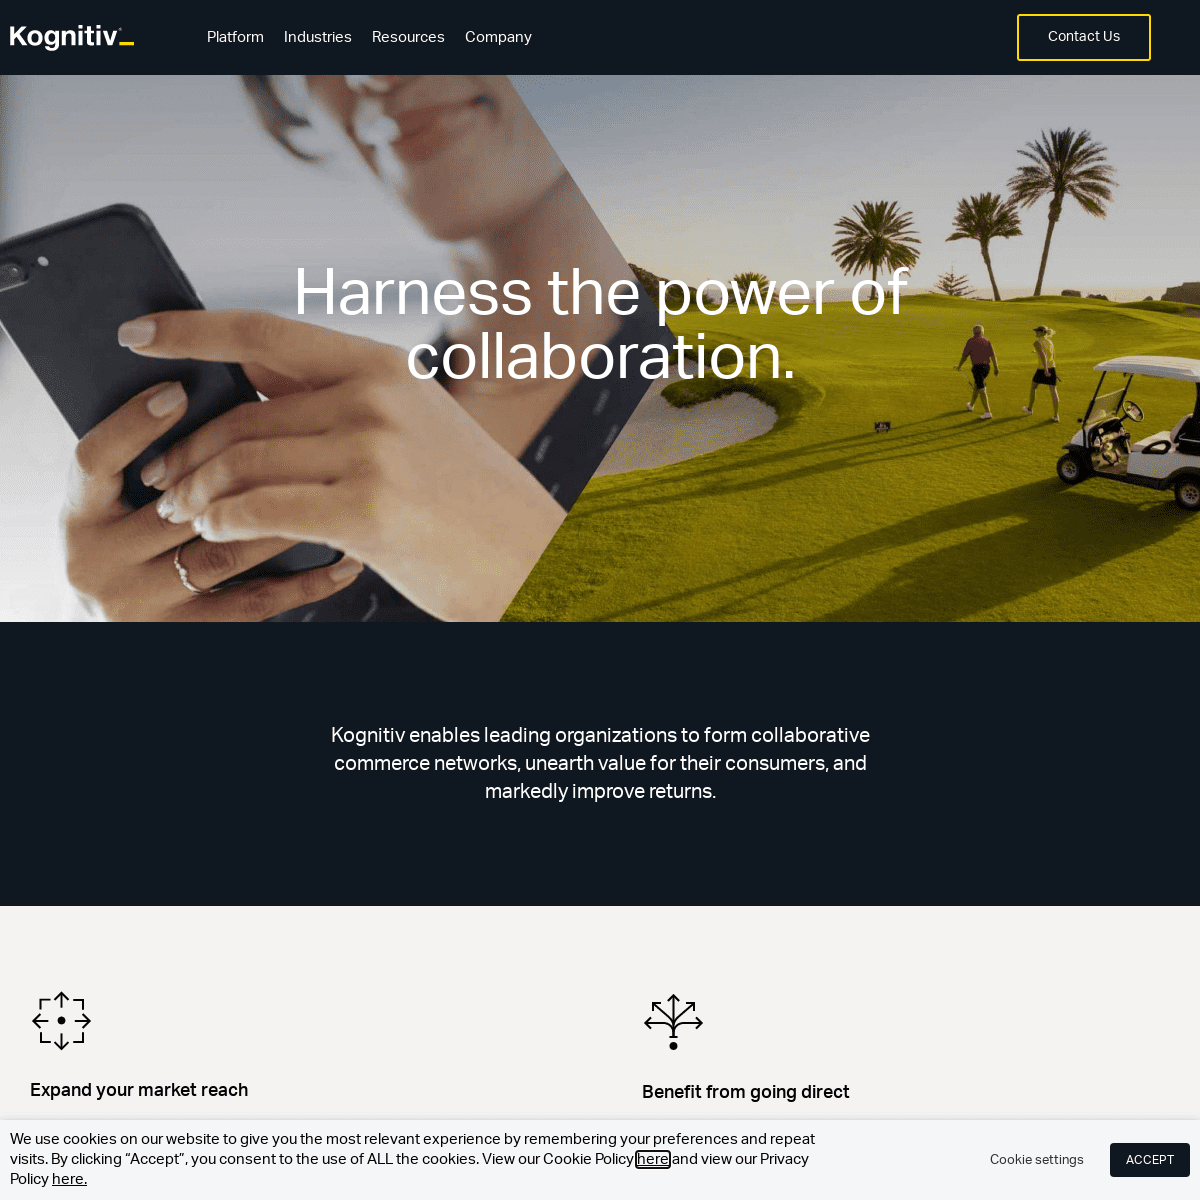 Kognitiv - Harness the power of collaboration